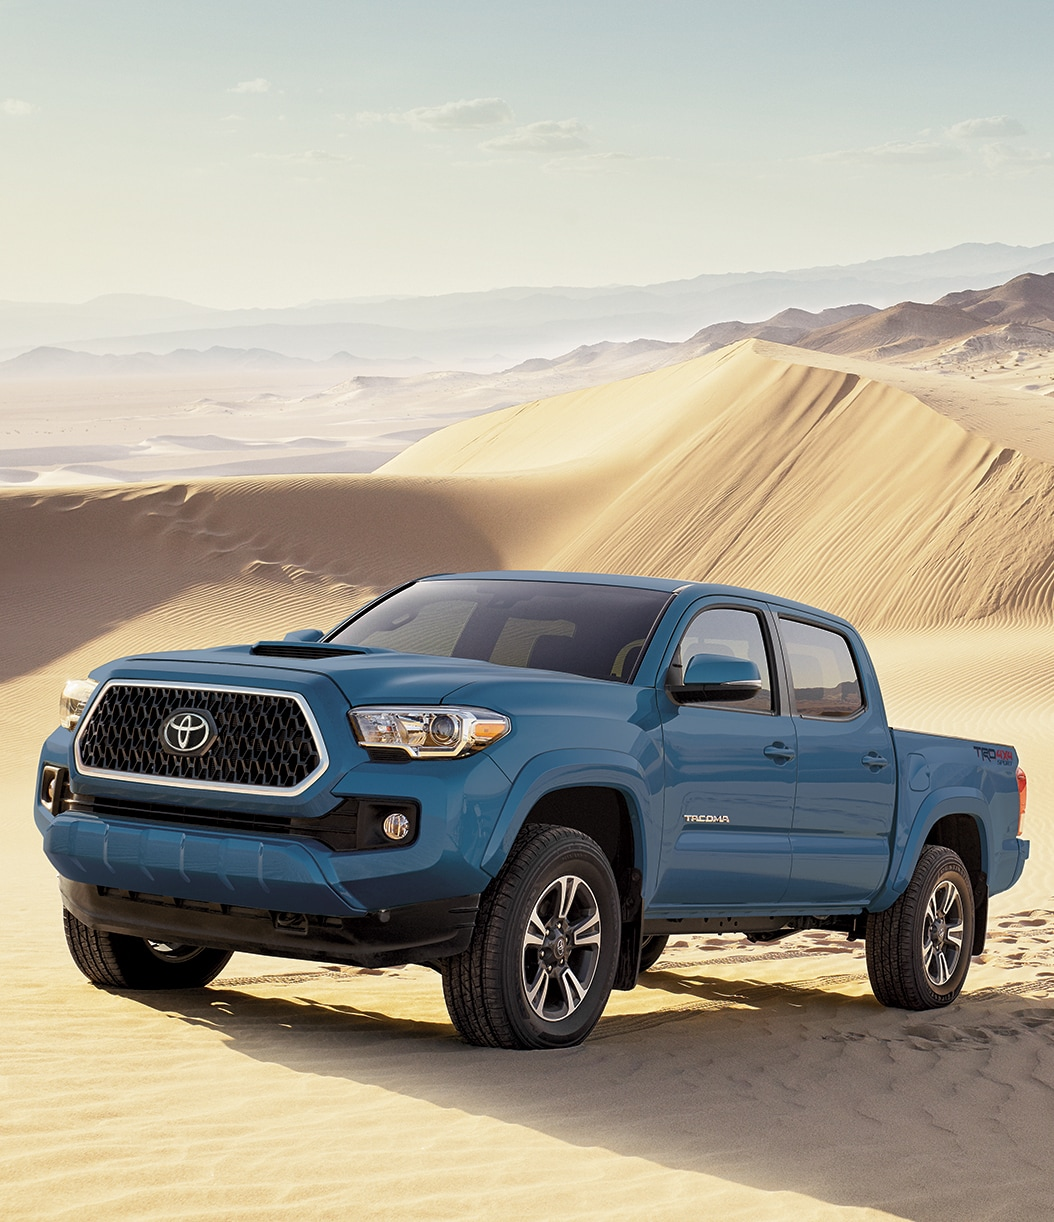 Blue 2019 Tacoma driving through sand dunes